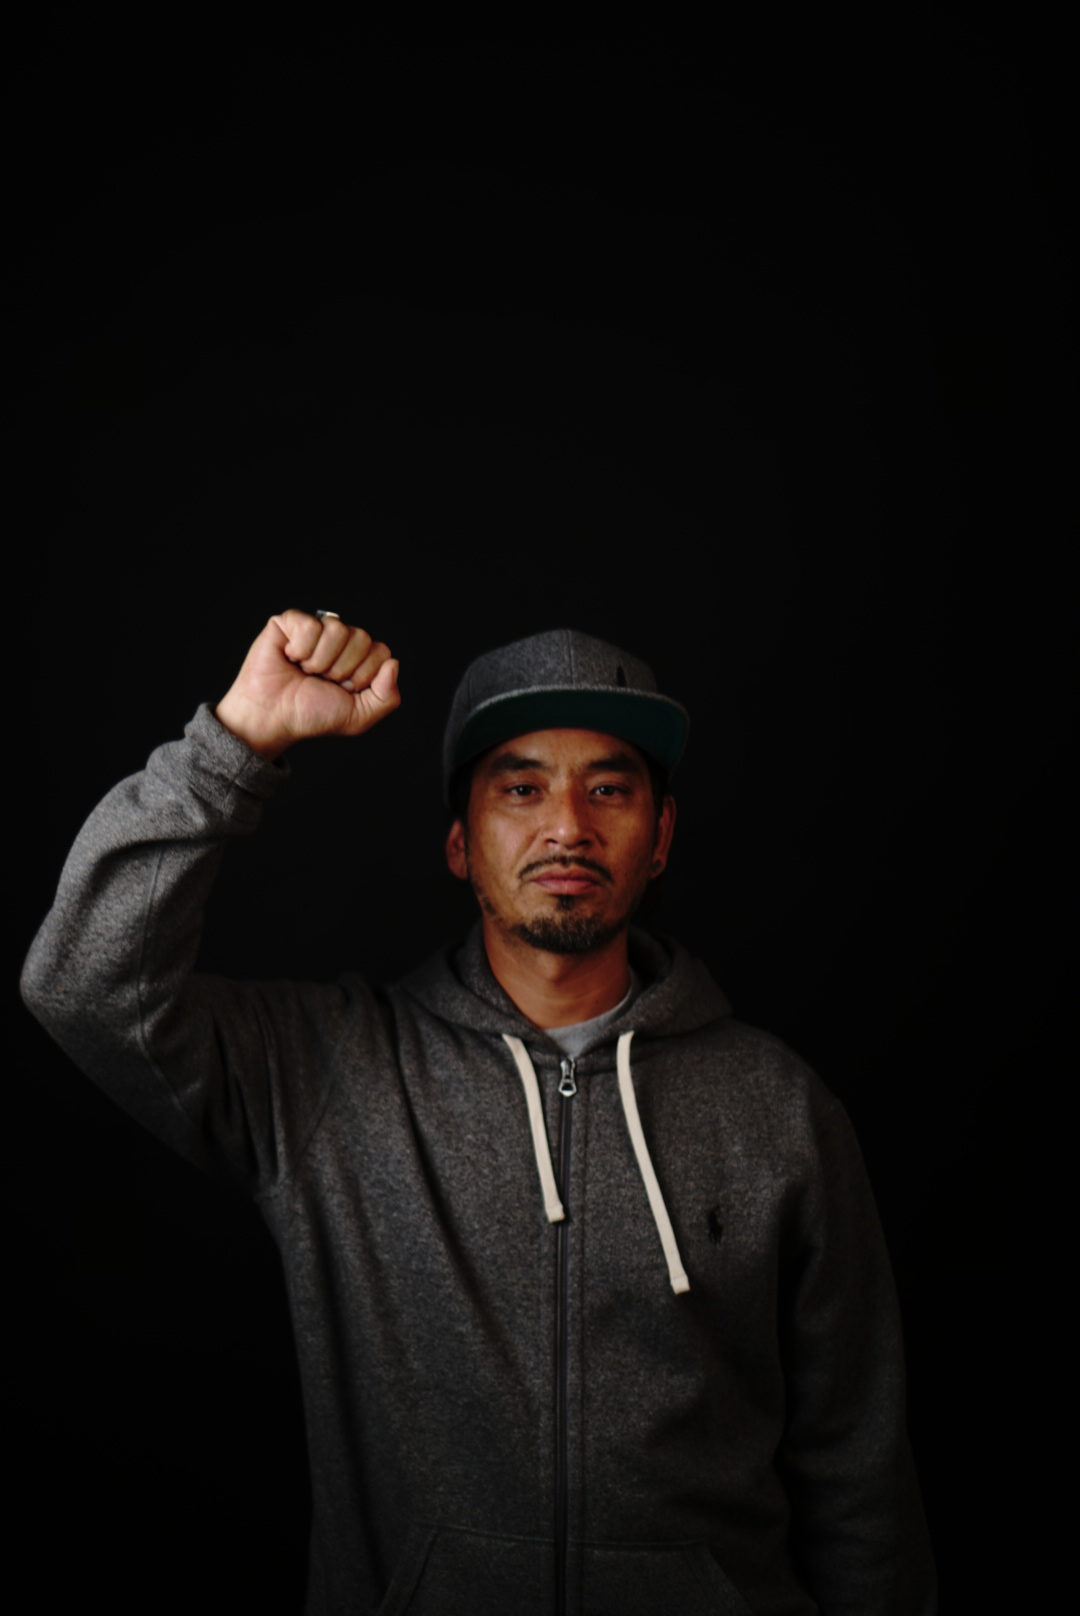 SF Rapper and activist Equipto continues to lead by example |